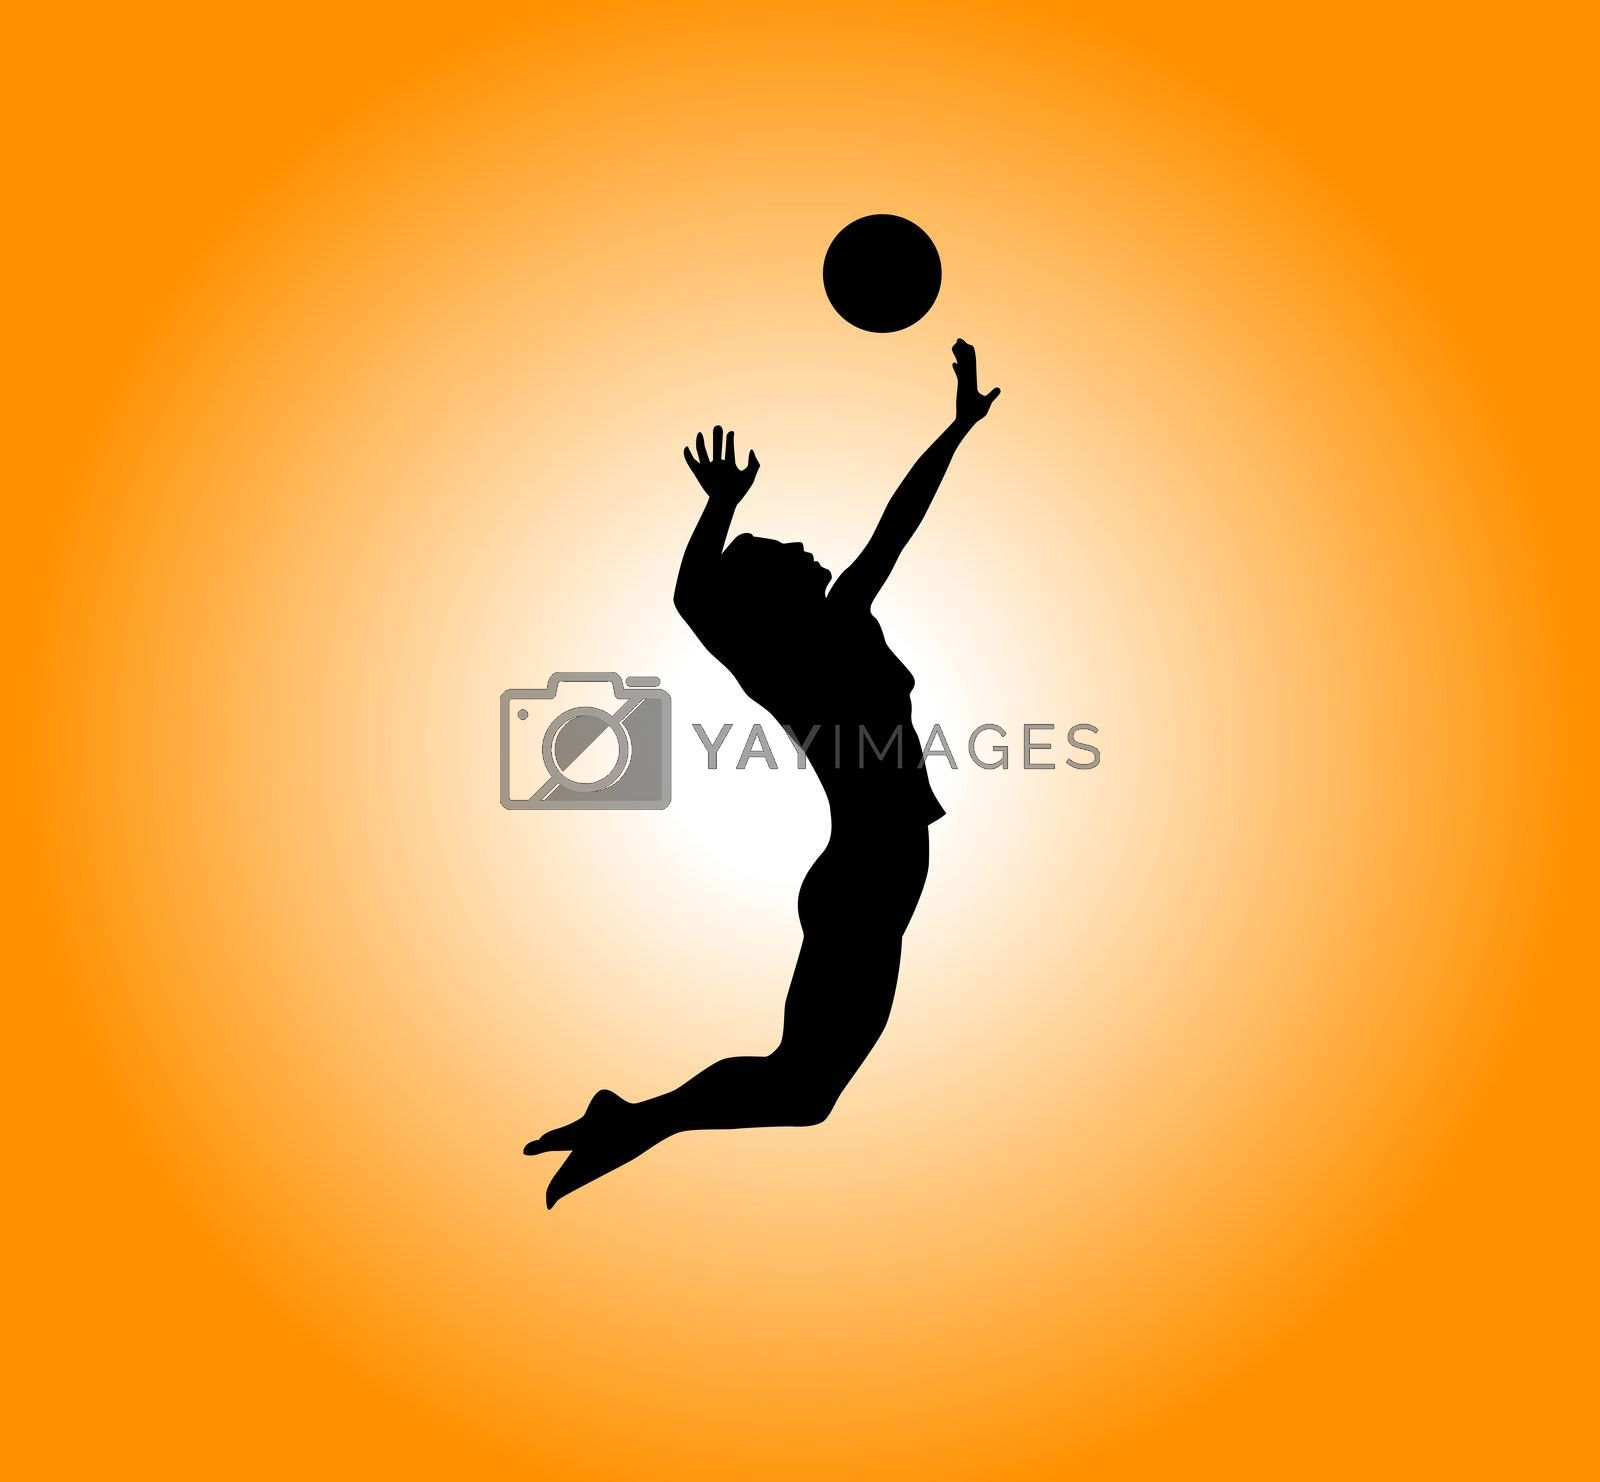 silhouette - woman plays volleyball